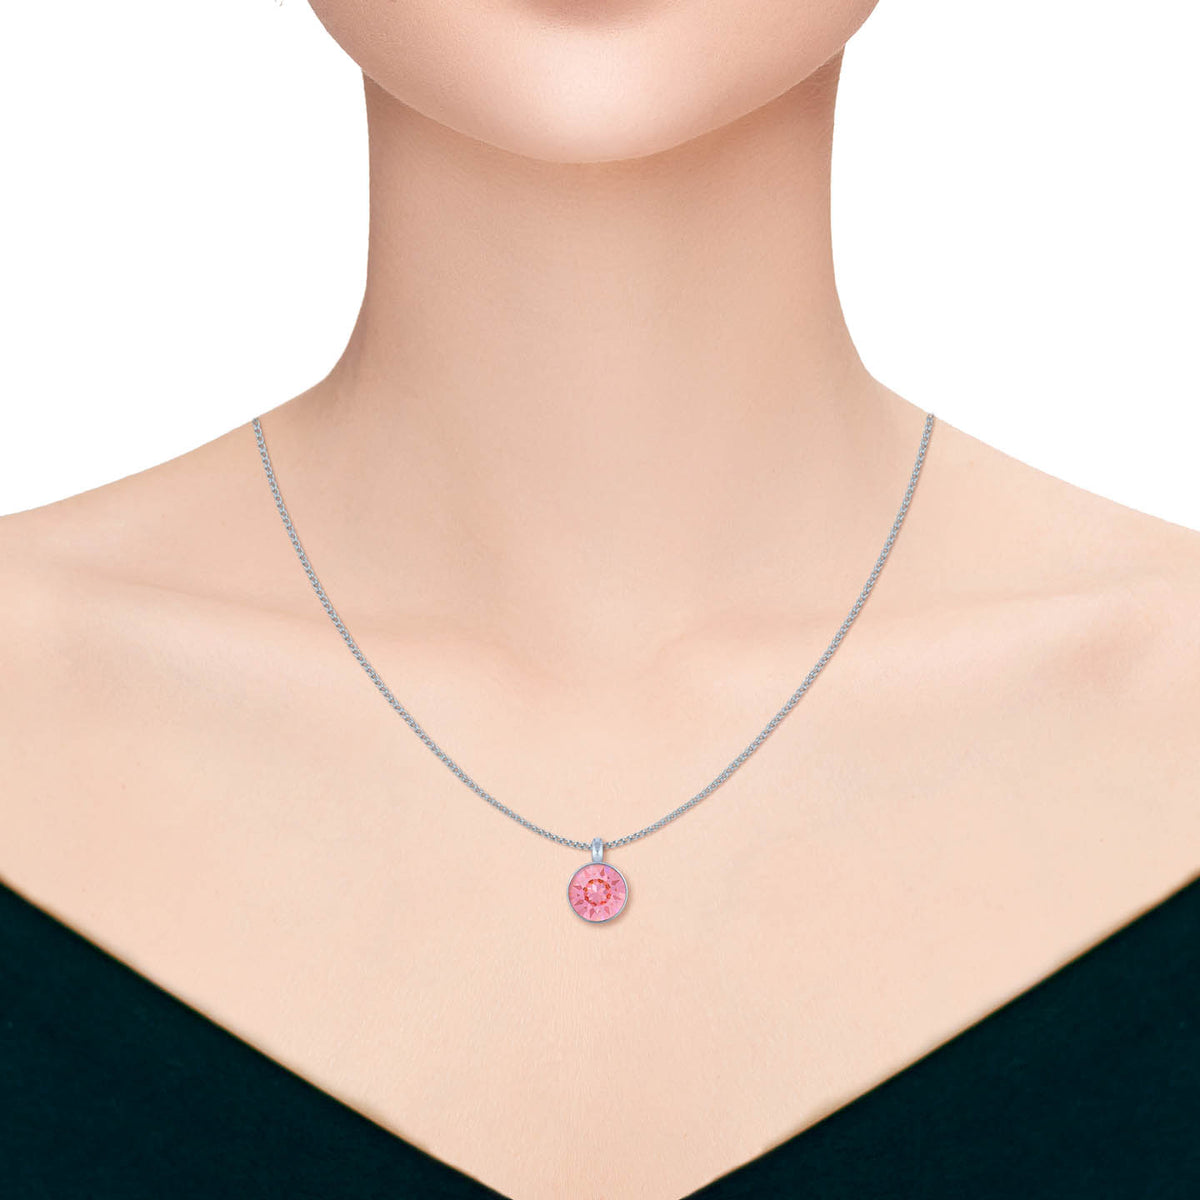 Bella Pendant Necklace with Pink Light Rose Round Crystals from Swarovski Silver Toned Rhodium Plated - Ed Heart